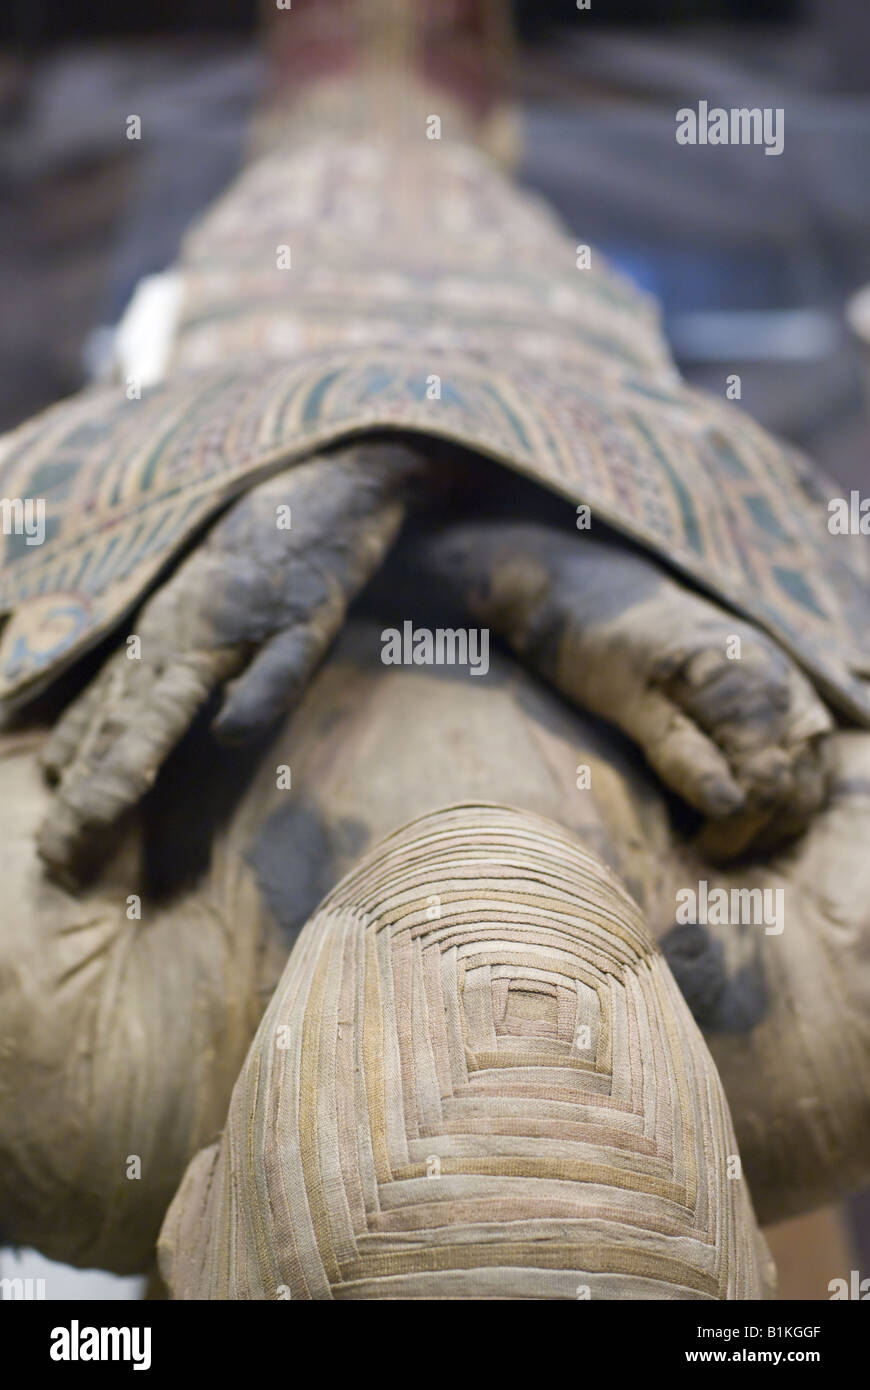 Mummy in the Louvre Museum in Paris France - Stock Image